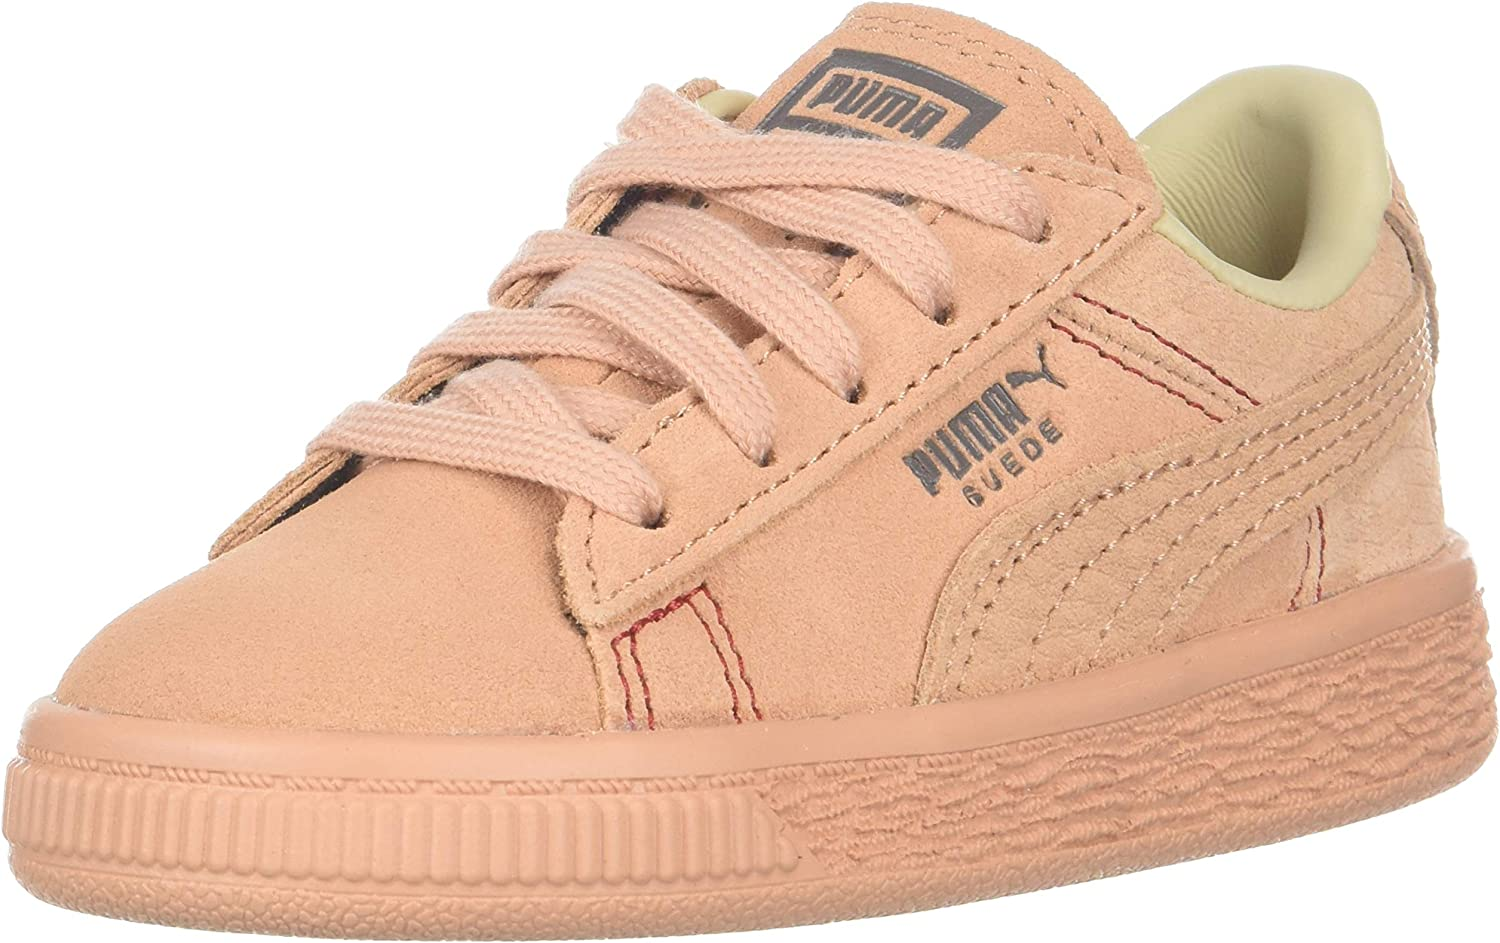 PUMA Unisex-Child Suede Classic Sneaker Basket Peach Free Shipping Cheap Bargain Gift New Shipping Free Shipping